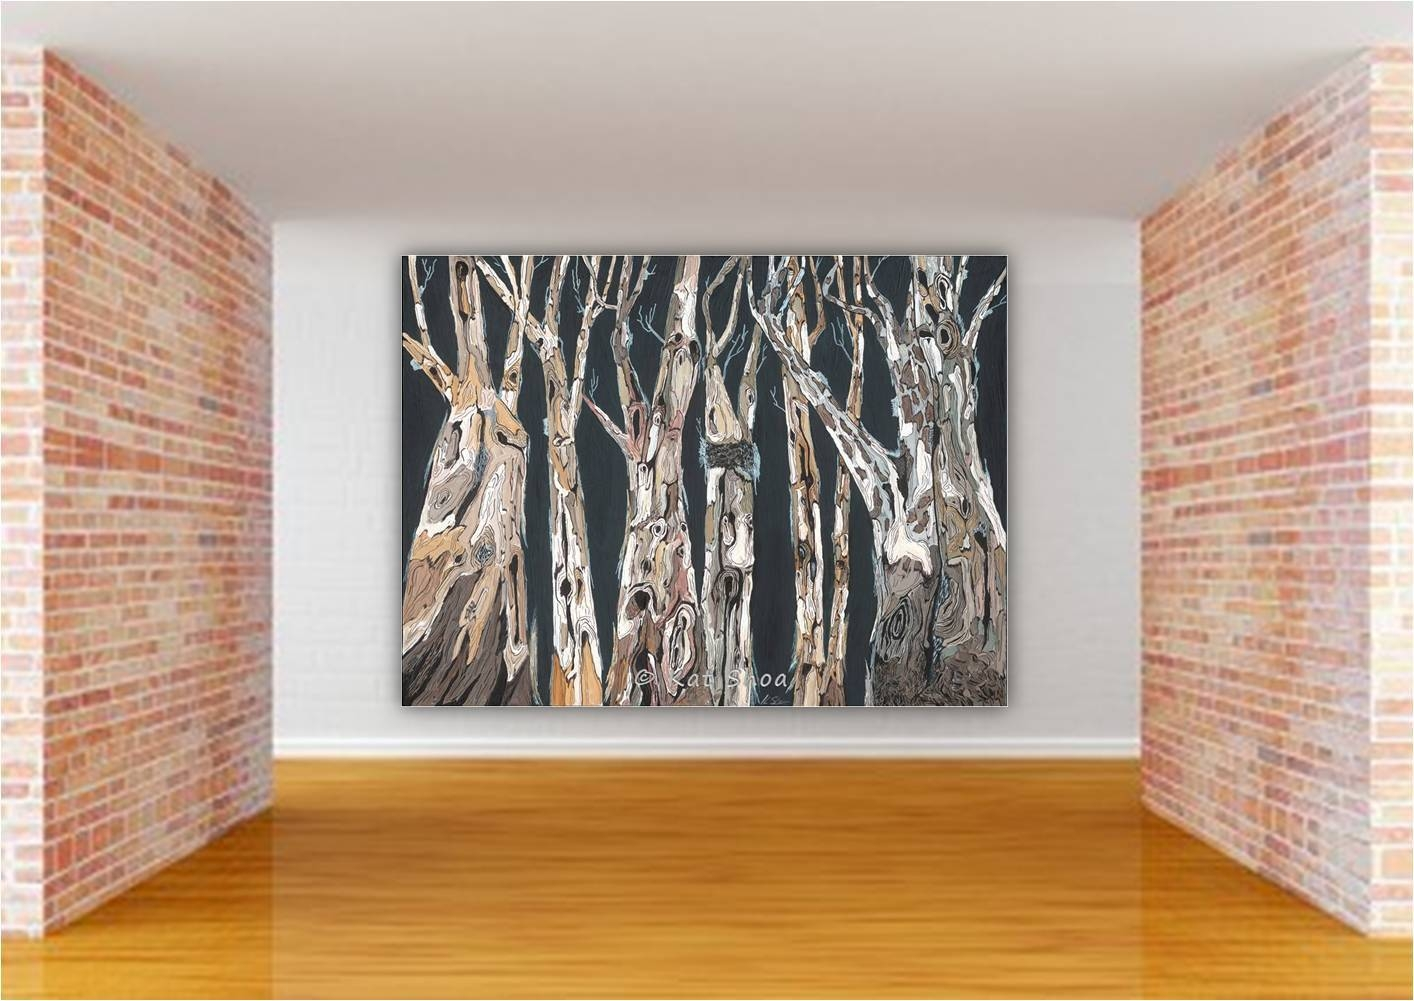 Long Wall Art Extra Large Canvas Print Gicleetree White In 2017 Huge Wall Art (View 2 of 20)